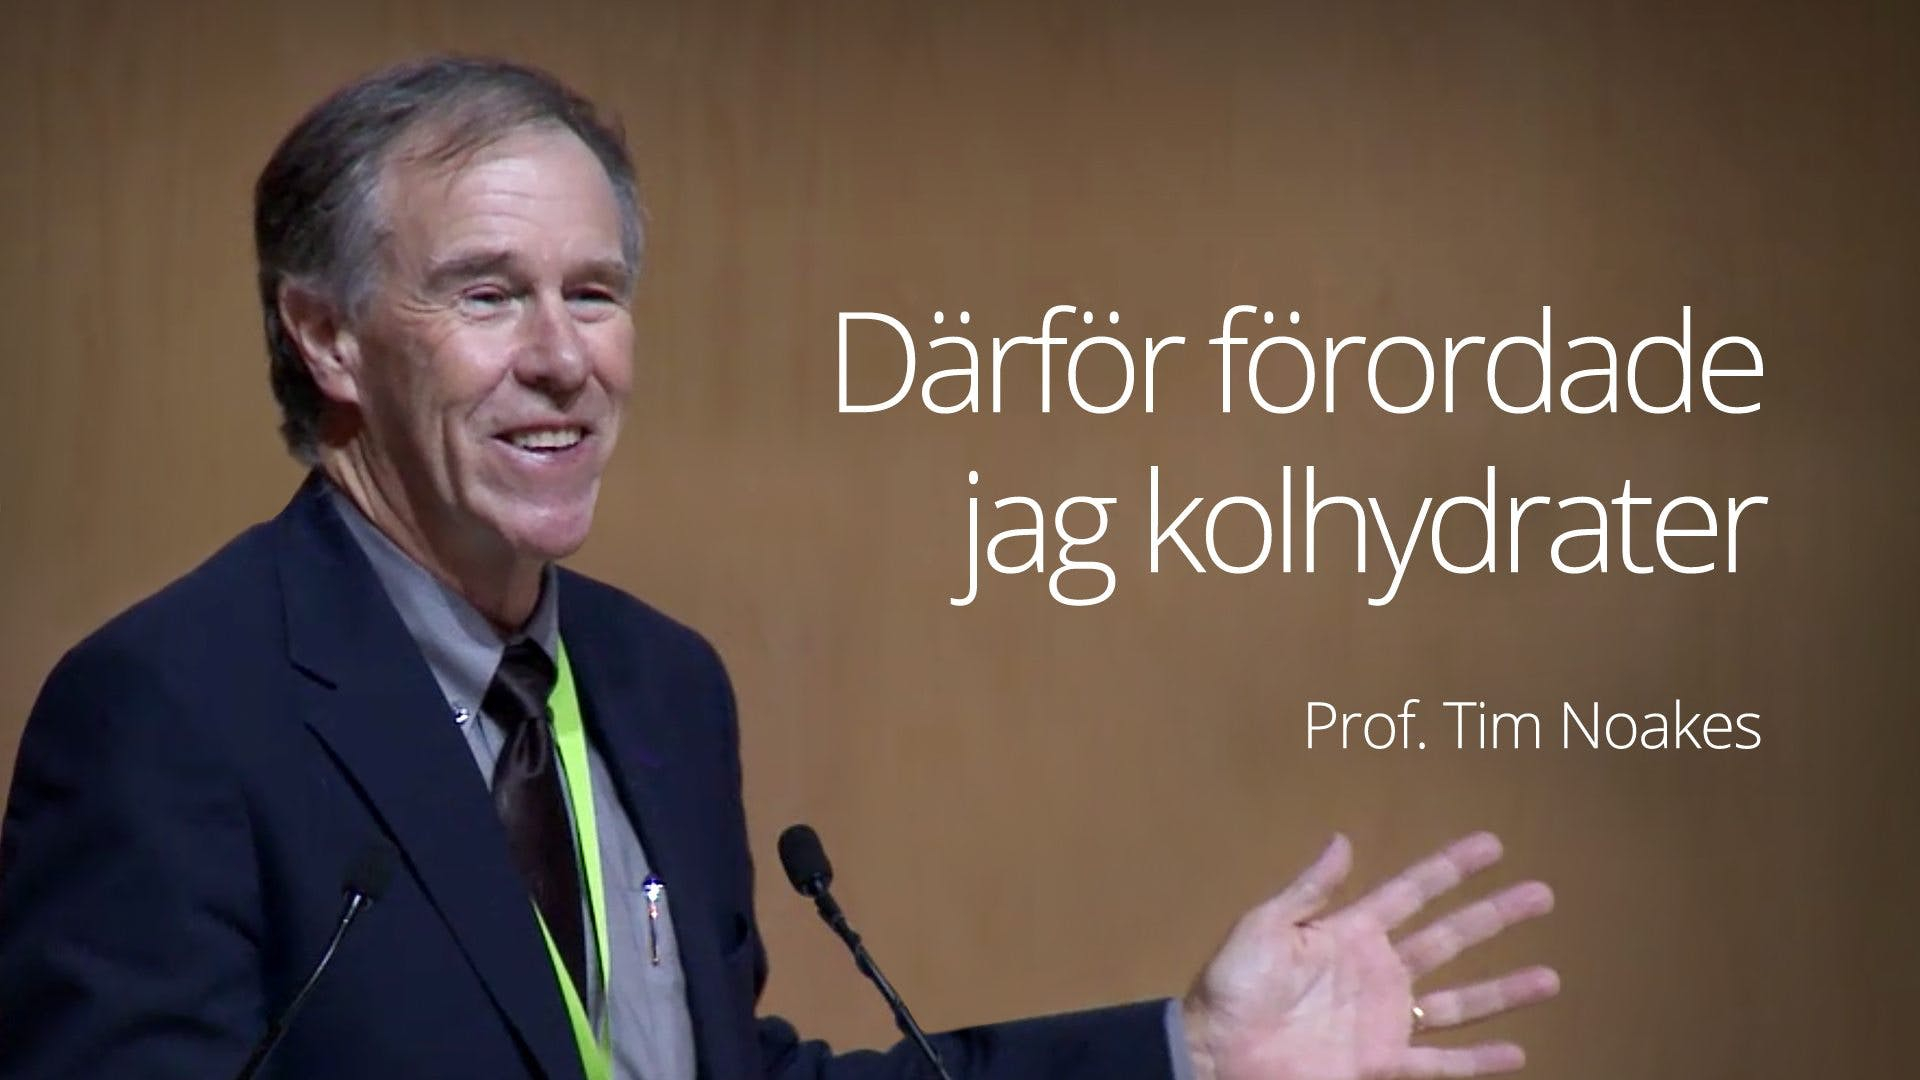 Prof. Tim Noakes - Why I Supported High Carb (SA 2015)